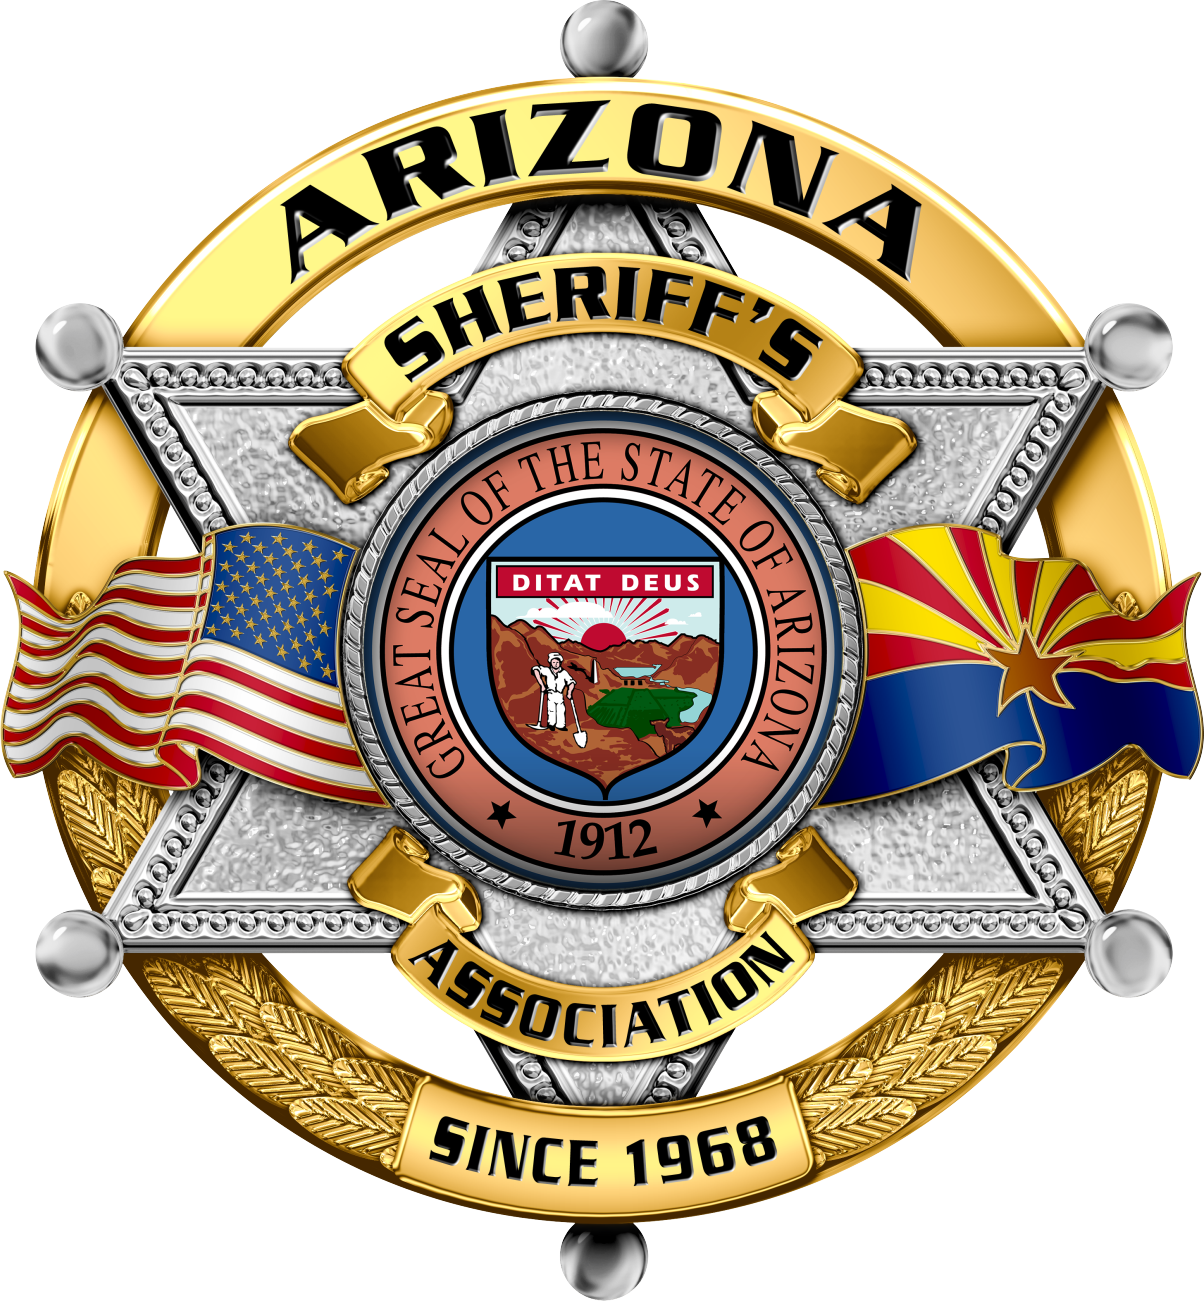 Arizona Sheriffs Association Since 1968 Shield